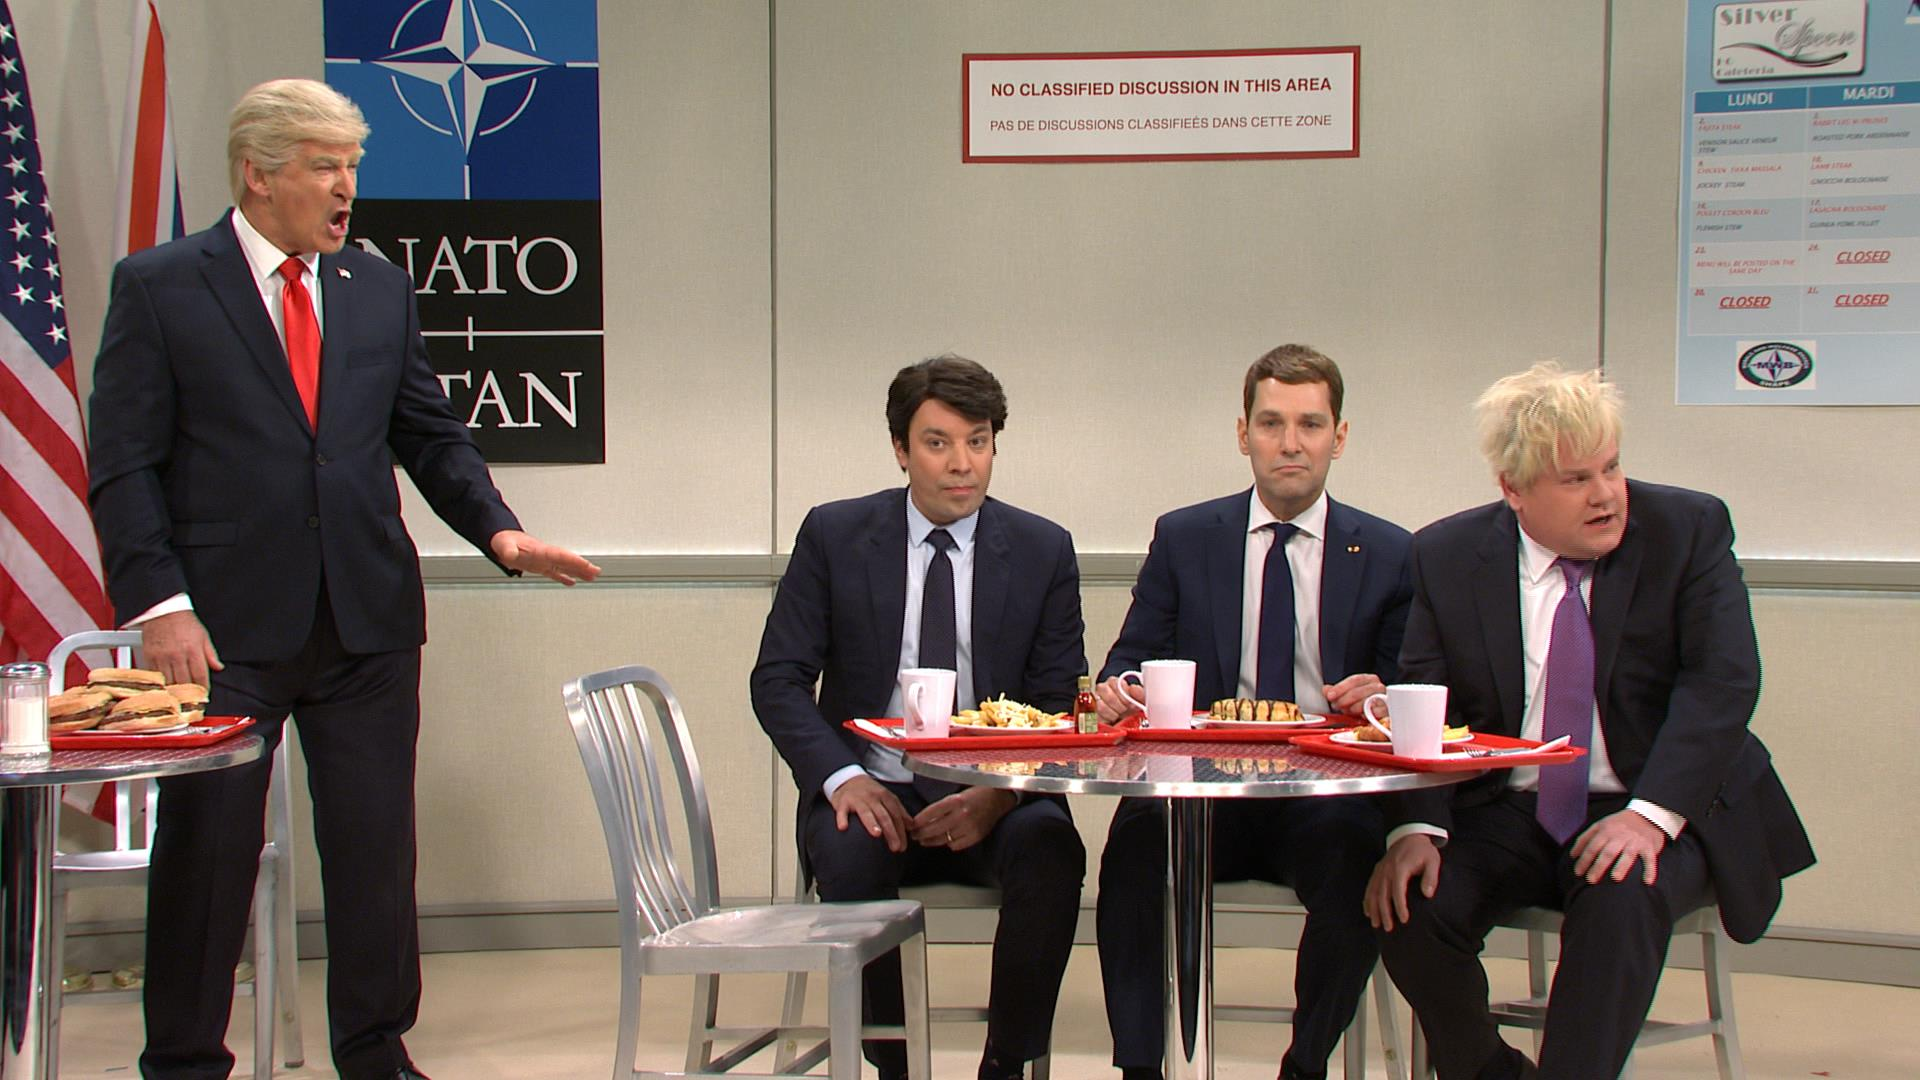 Cool kids of 'SNL' are mean to Trump in NATO lunchroom